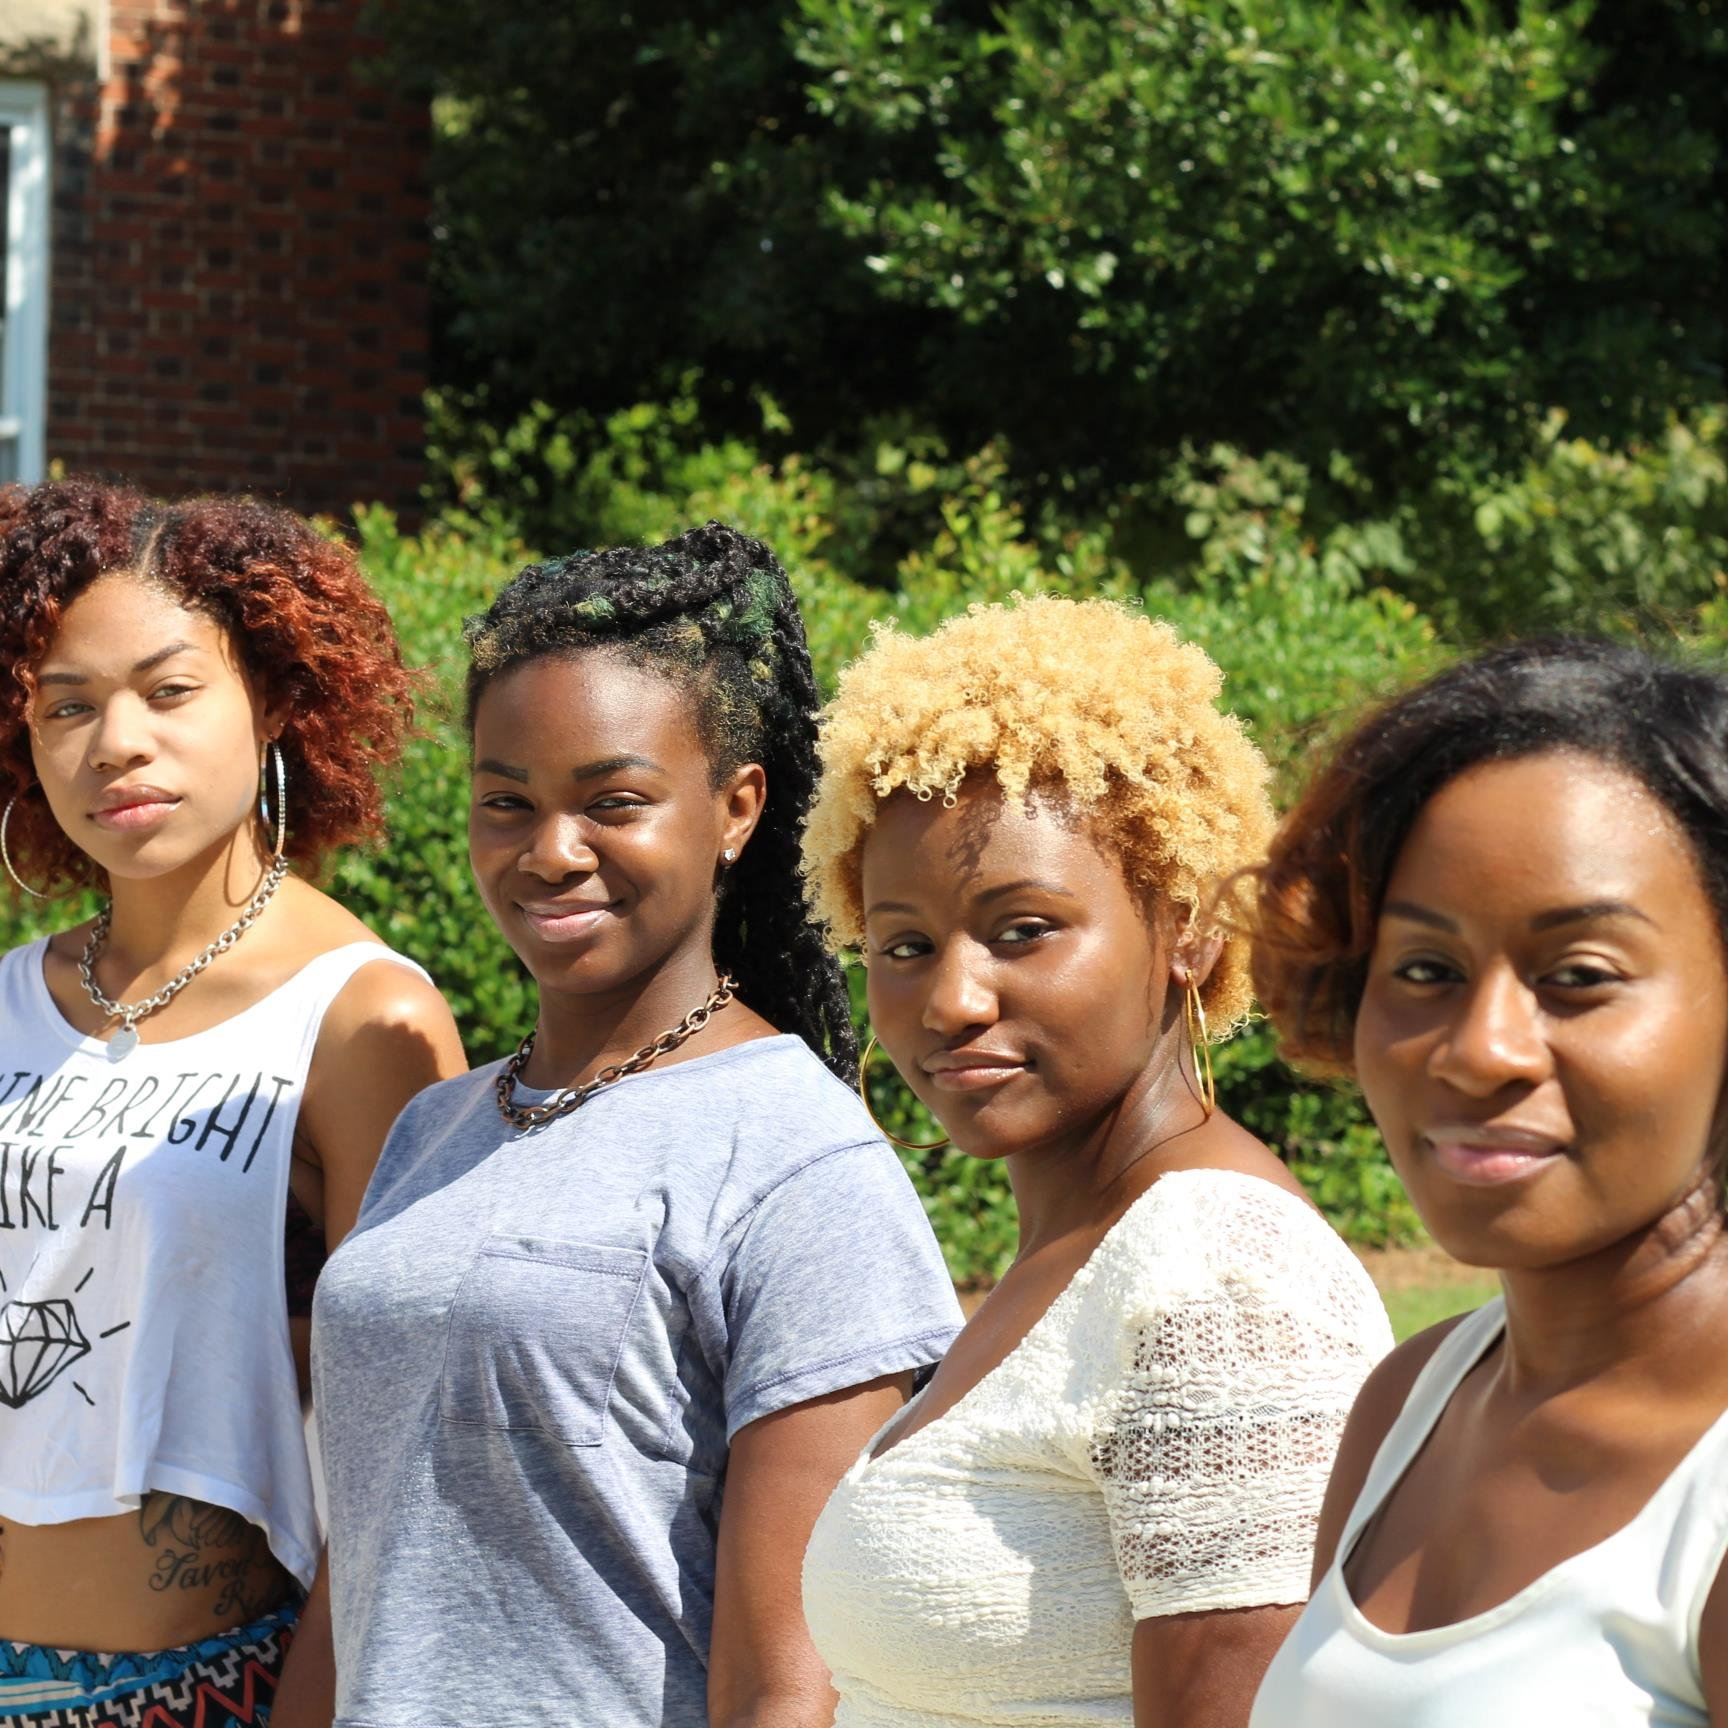 Kinky Hair Sisters On Twitter I Added A Video To A Youtube Playlist Http T Co Ifu0lnaers Tory Lanez The Mission Official Video